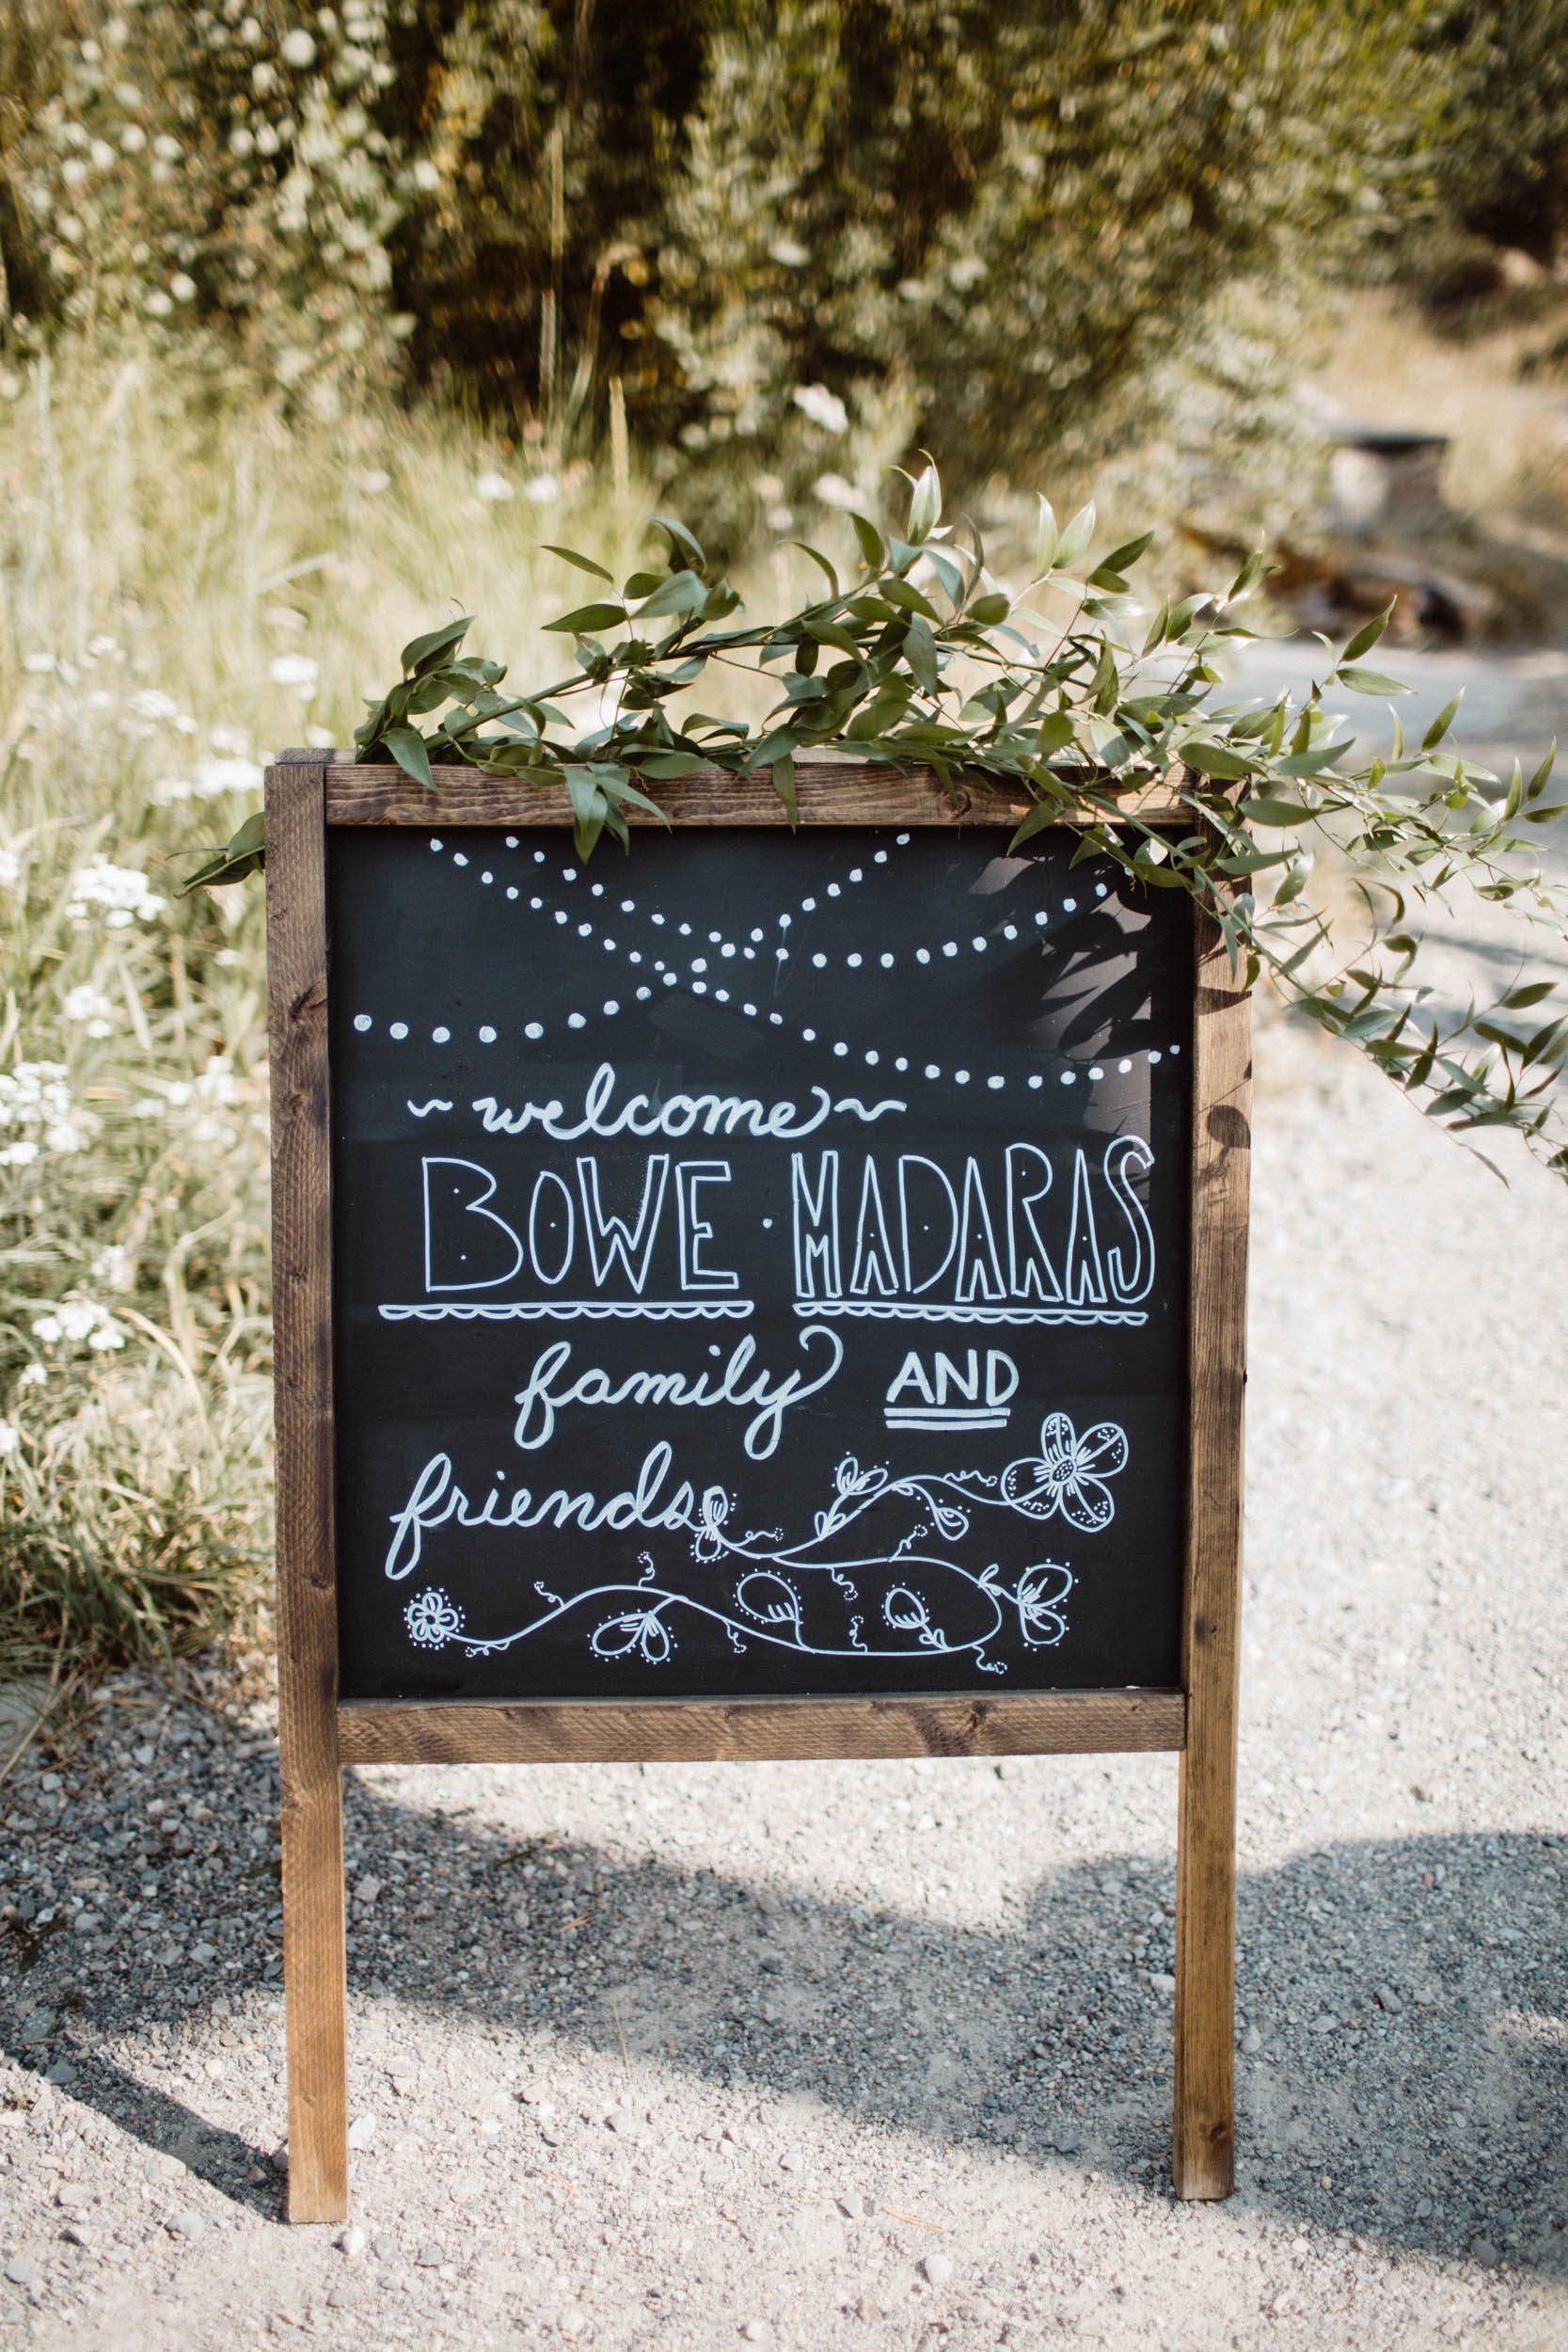 d_a_Galena_lodge_wedding-1.jpg